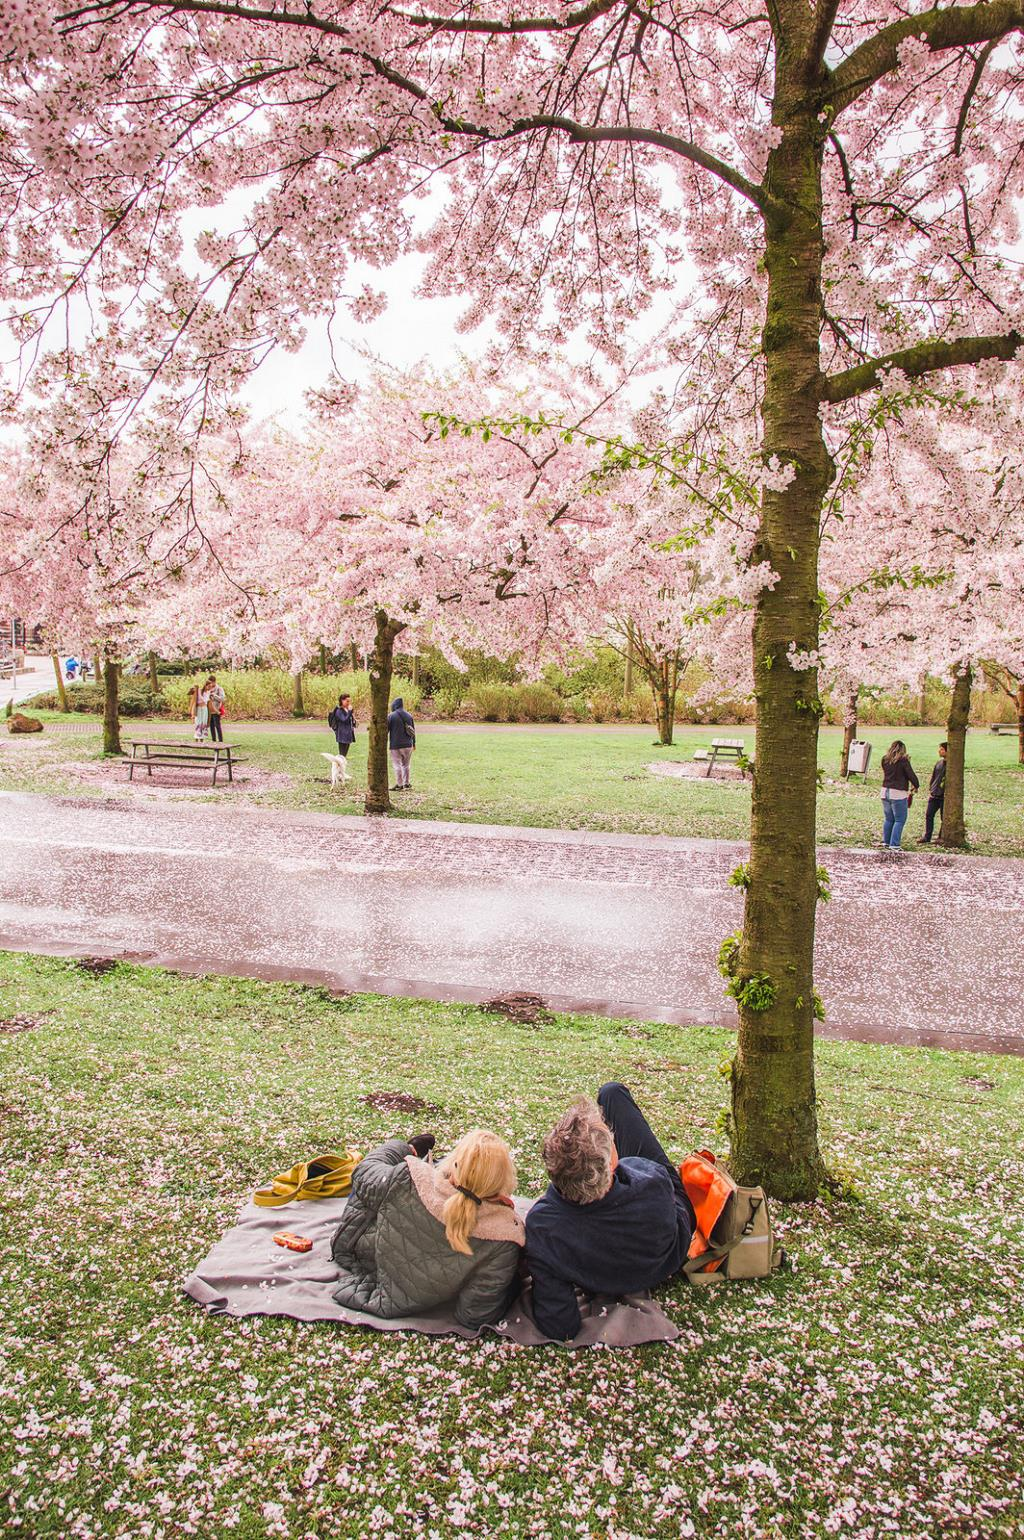 A couple relaxes on a blanket underneath the cherry blossoms